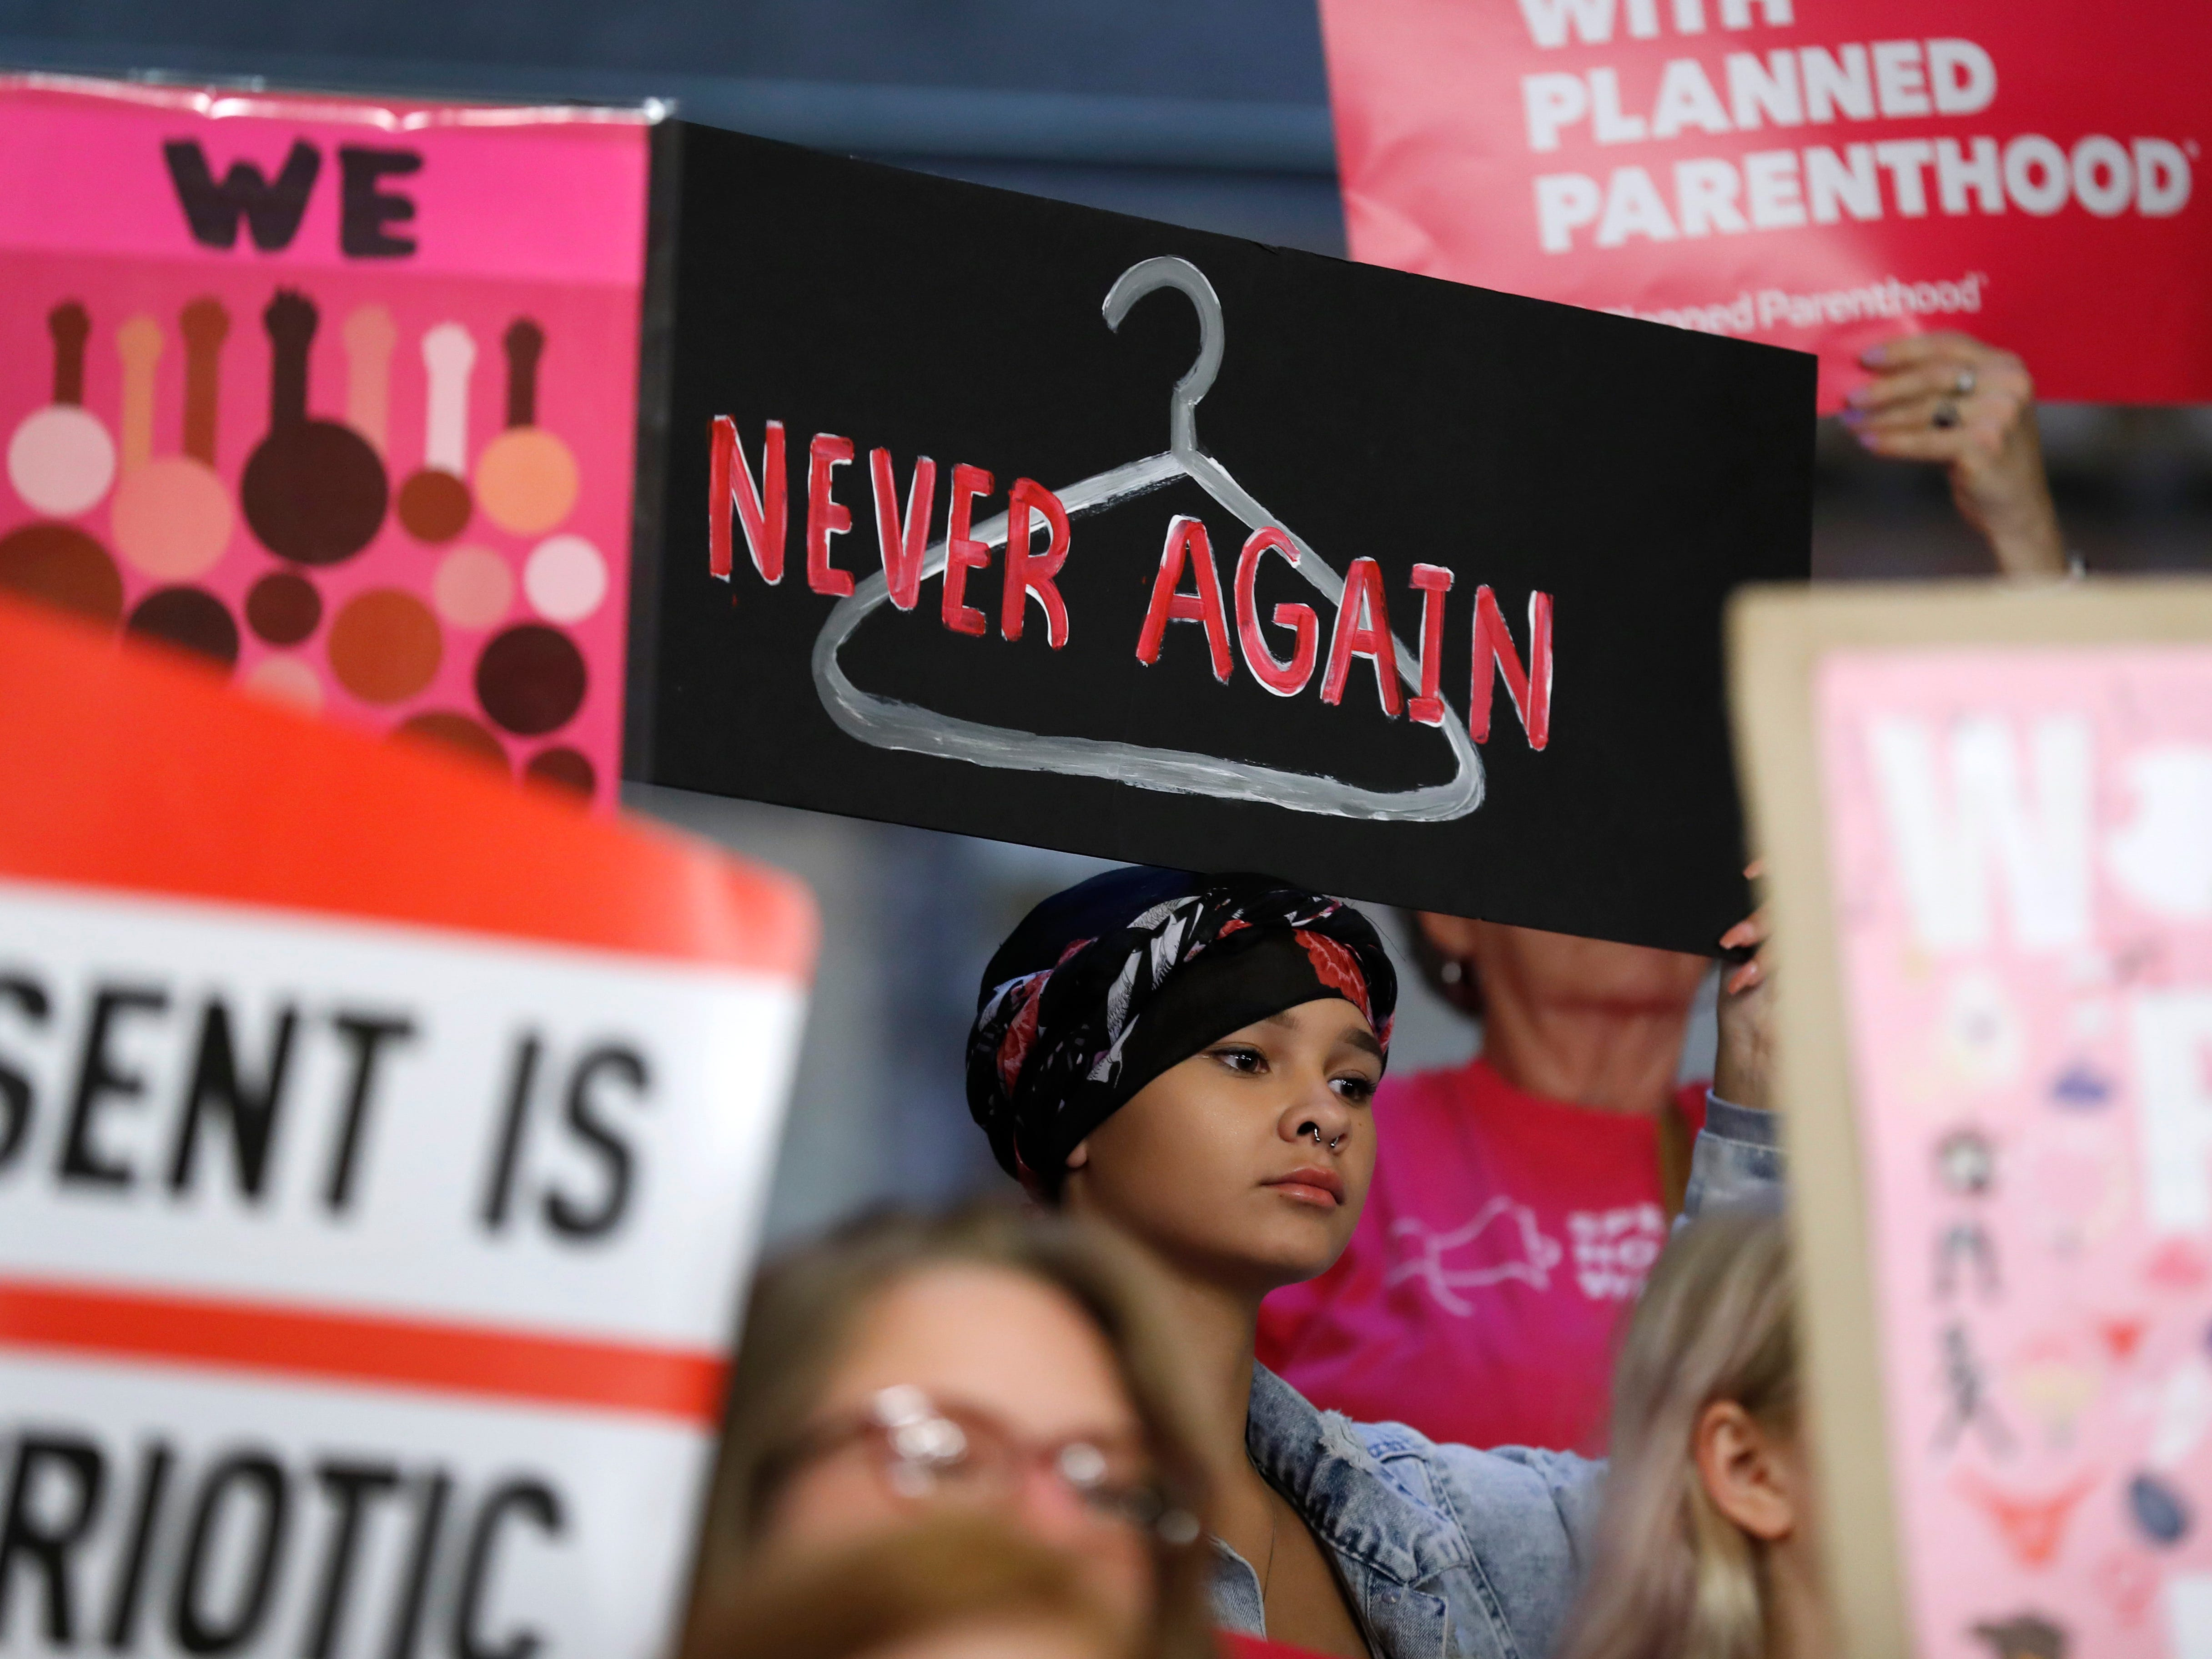 August Mulvihill, of Norwalk, Iowa, center, holds a sign during a rally to protest recent abortion bans, Tuesday, May 21, 2019, at the Statehouse in Des Moines, Iowa.